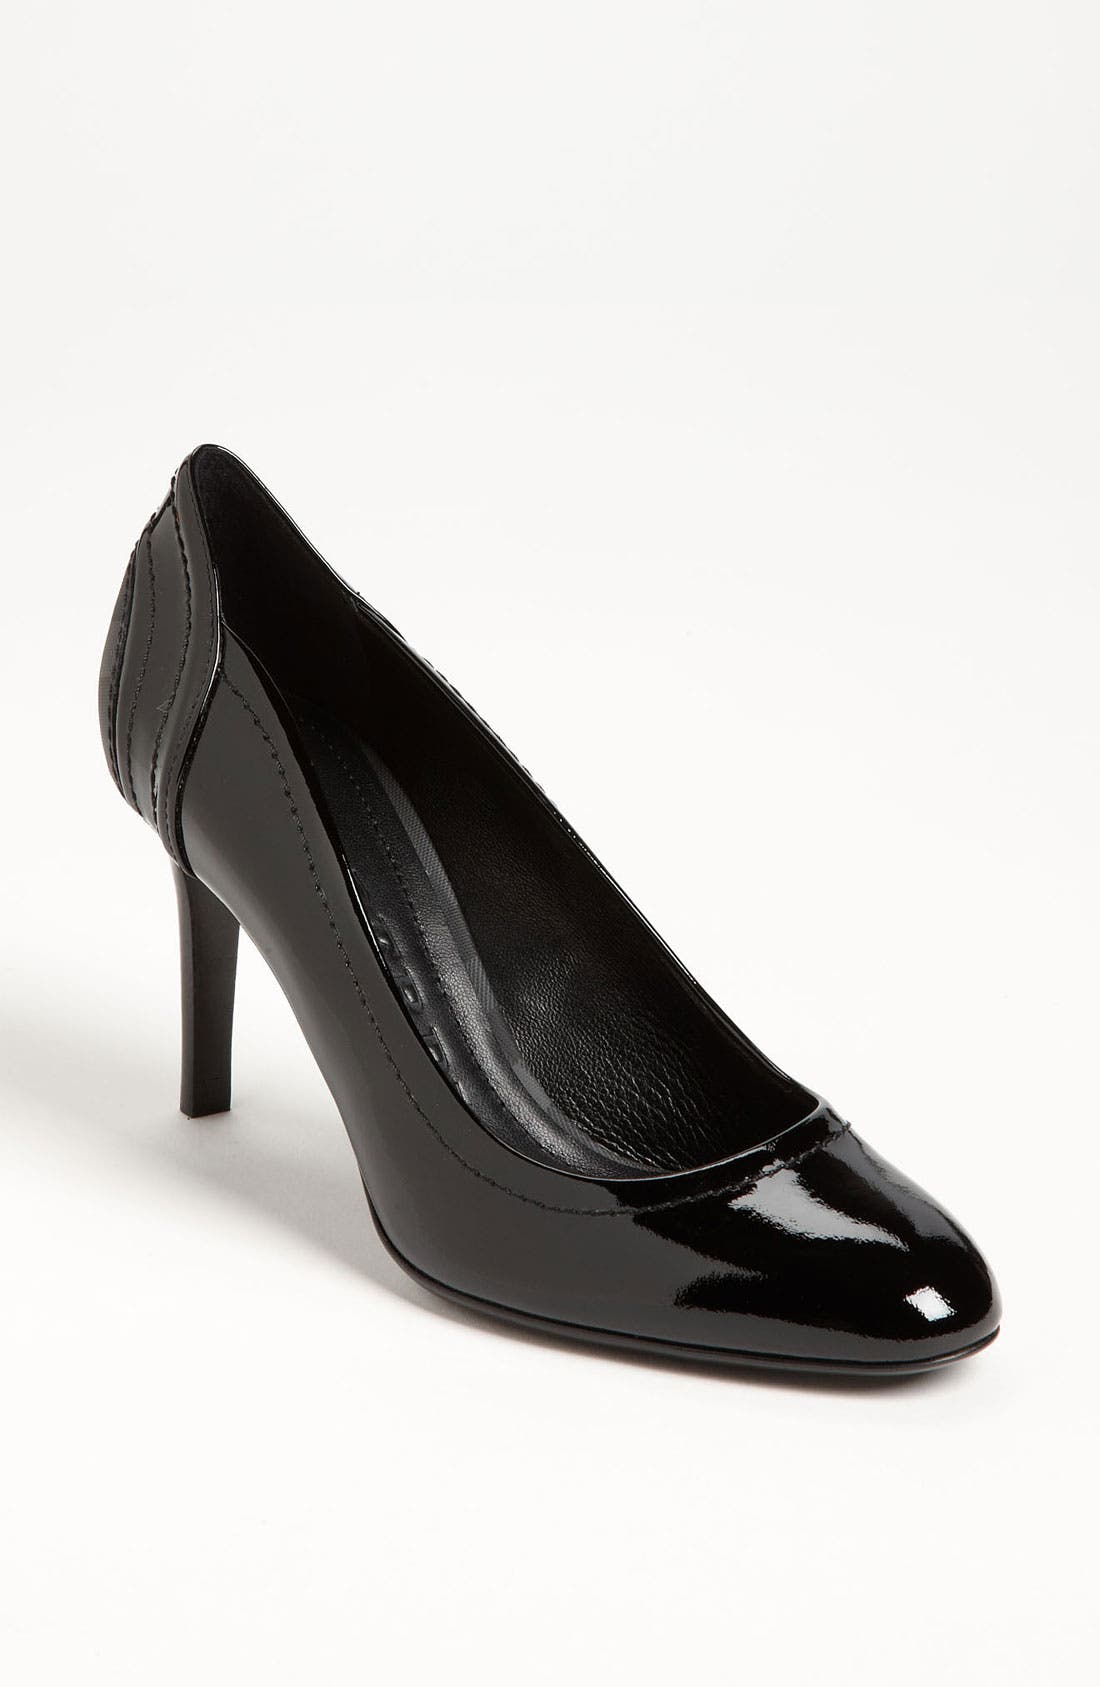 Main Image - Burberry Patent Leather Pump